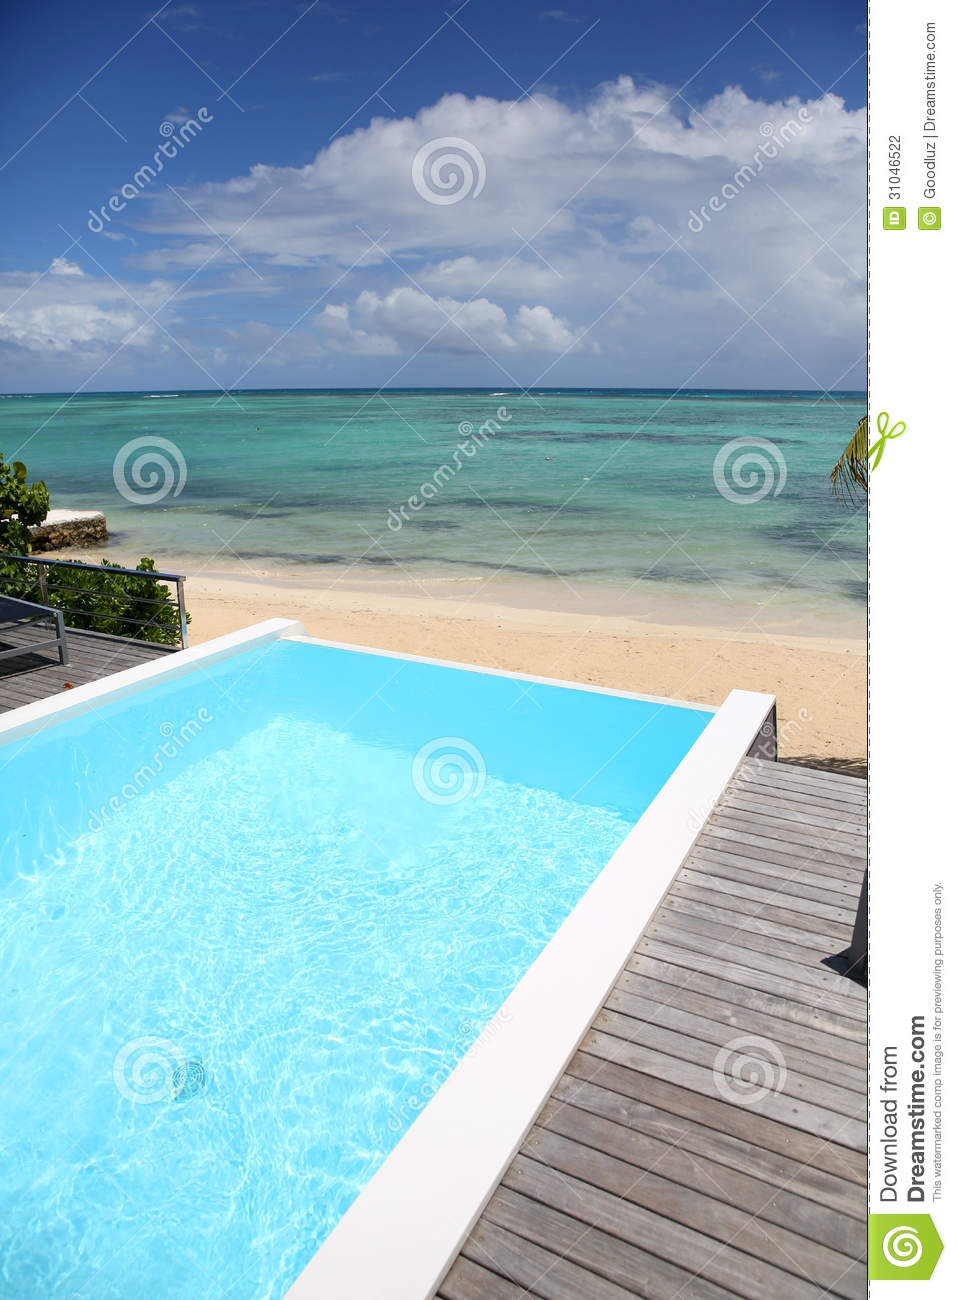 Piscine bleue devant la mer tropicale photographie stock for Piscine ile bleue seynod